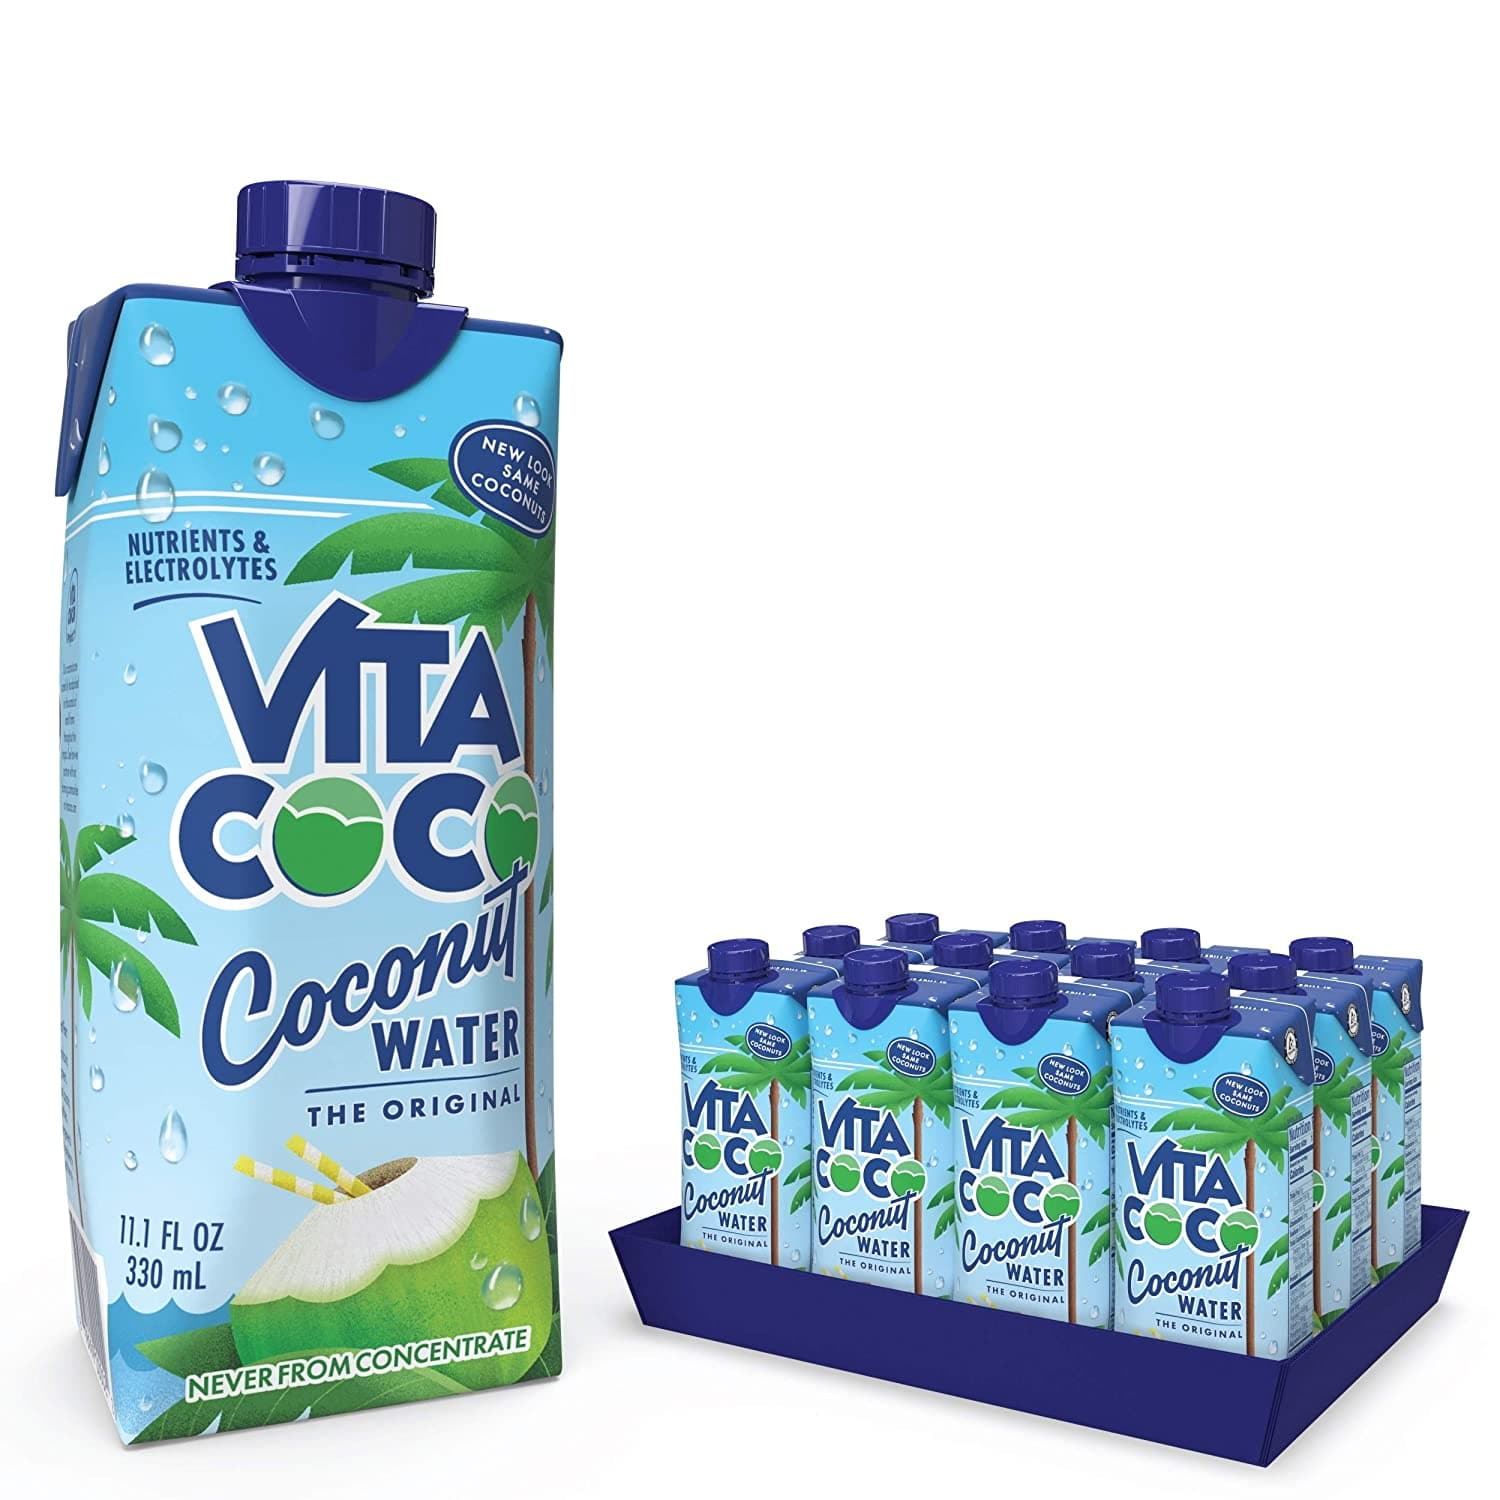 12-Pack 11.1oz. Vita Coco Pure Coconut Water $9.33 w/ Subscribe & Save